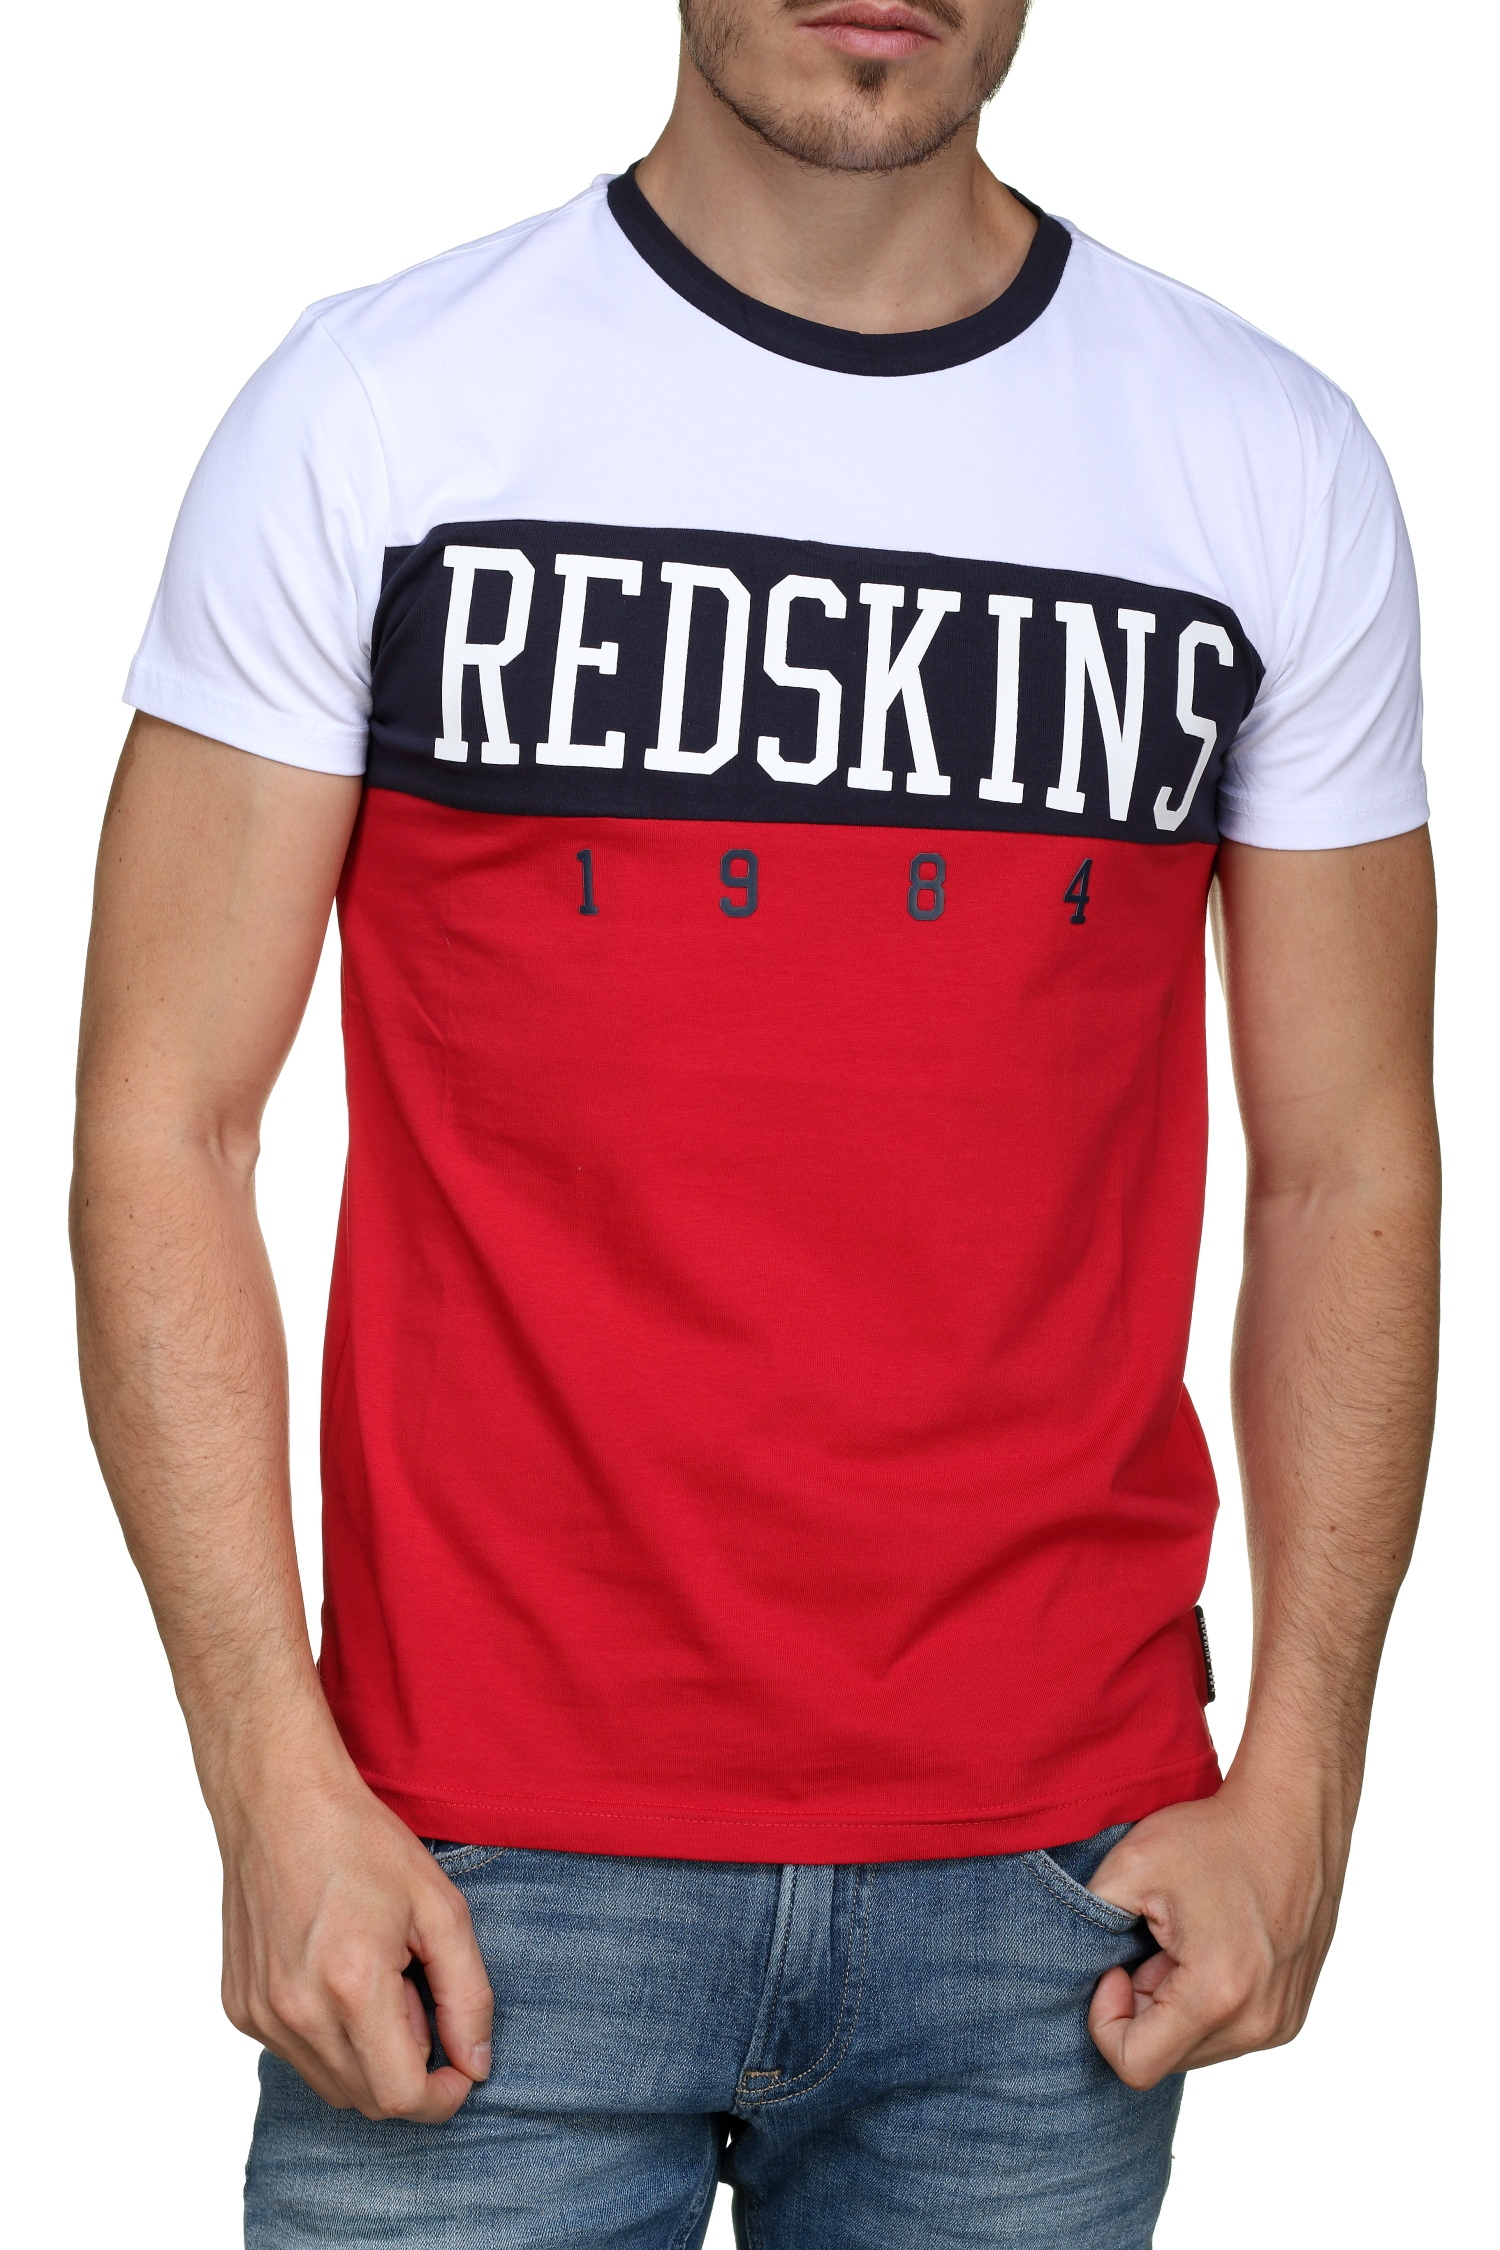 http://www.leadermode.com/179340/redskins-doves-calder-red-navy-white.jpg